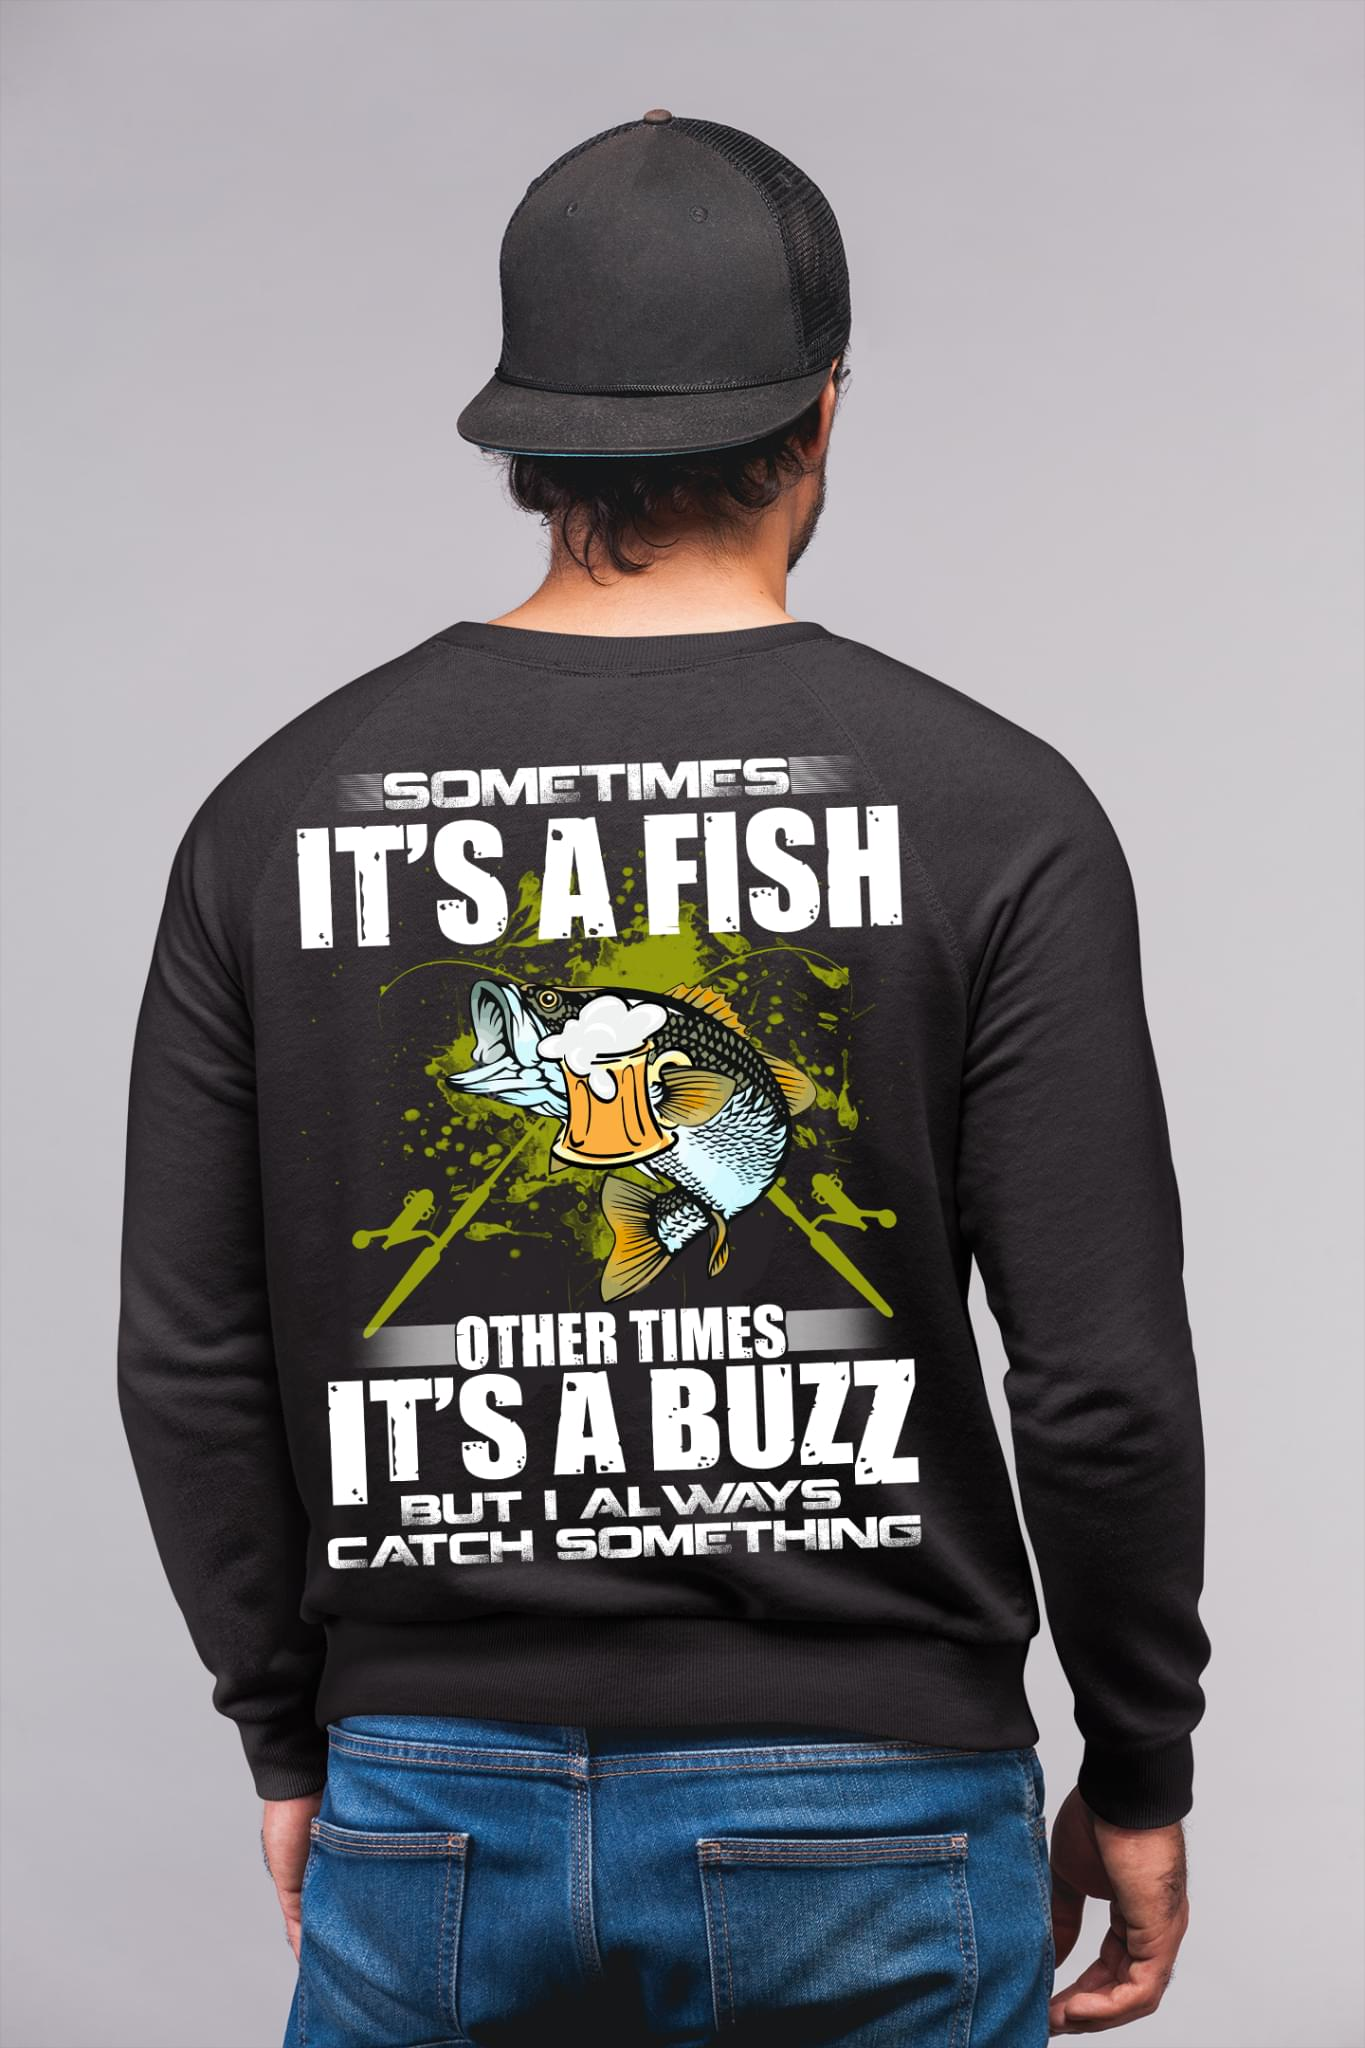 Sometimes Its A Fish Other Times Its A Buzz But Im Always Catch Something cotton t-shirt Hoodie Mug